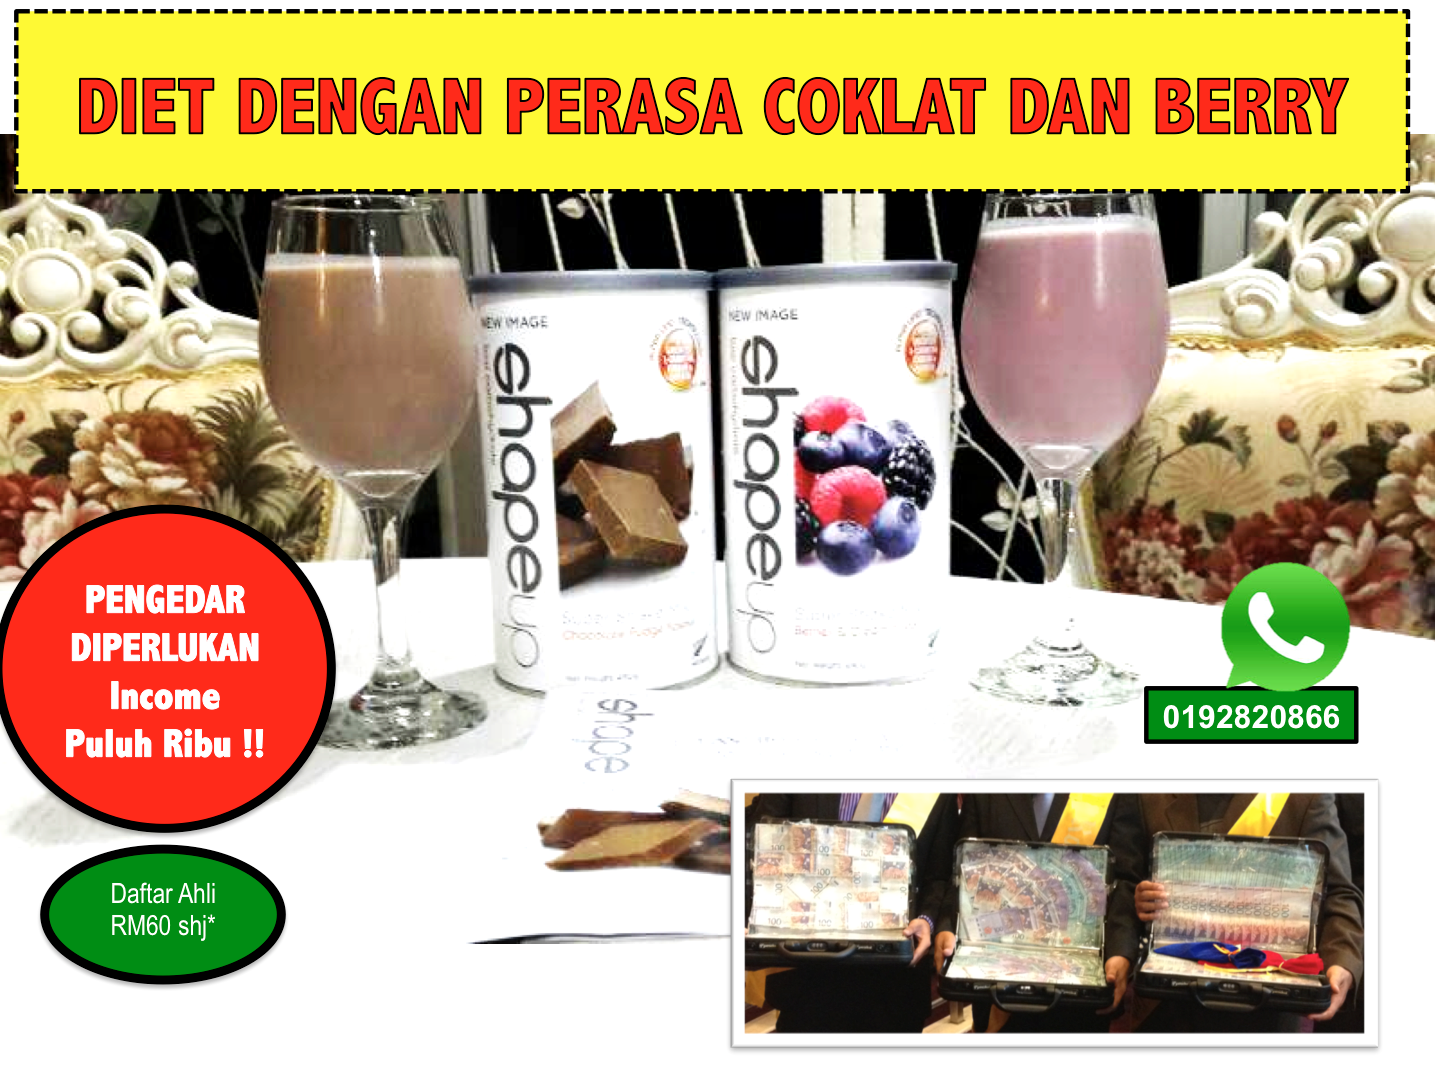 ALPHA LIPID SHAPE UP promosi hebat Promosi Hebat